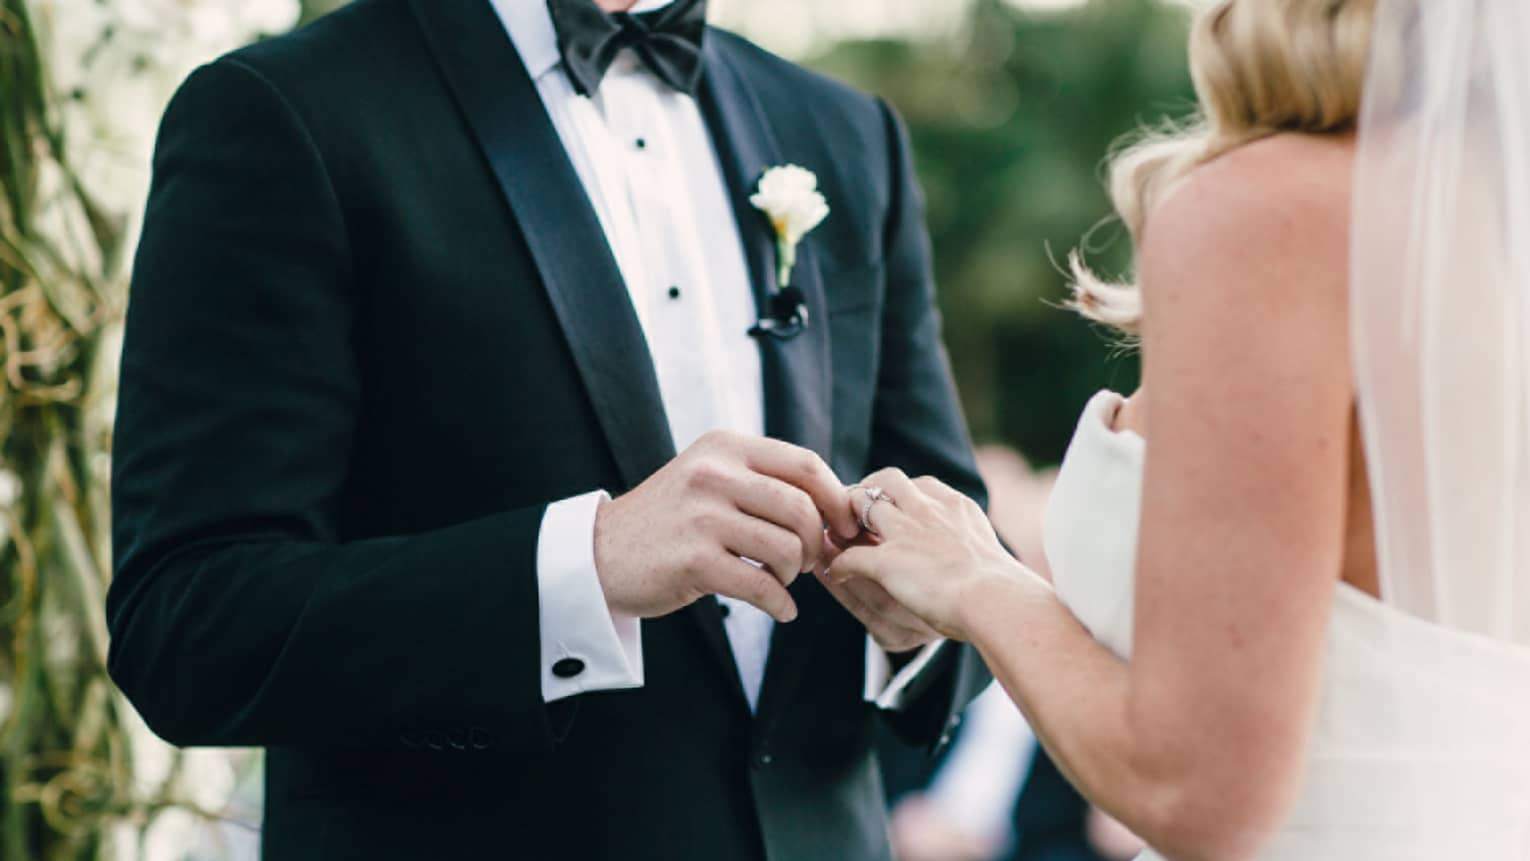 Groom slips wedding ring on bride's finger